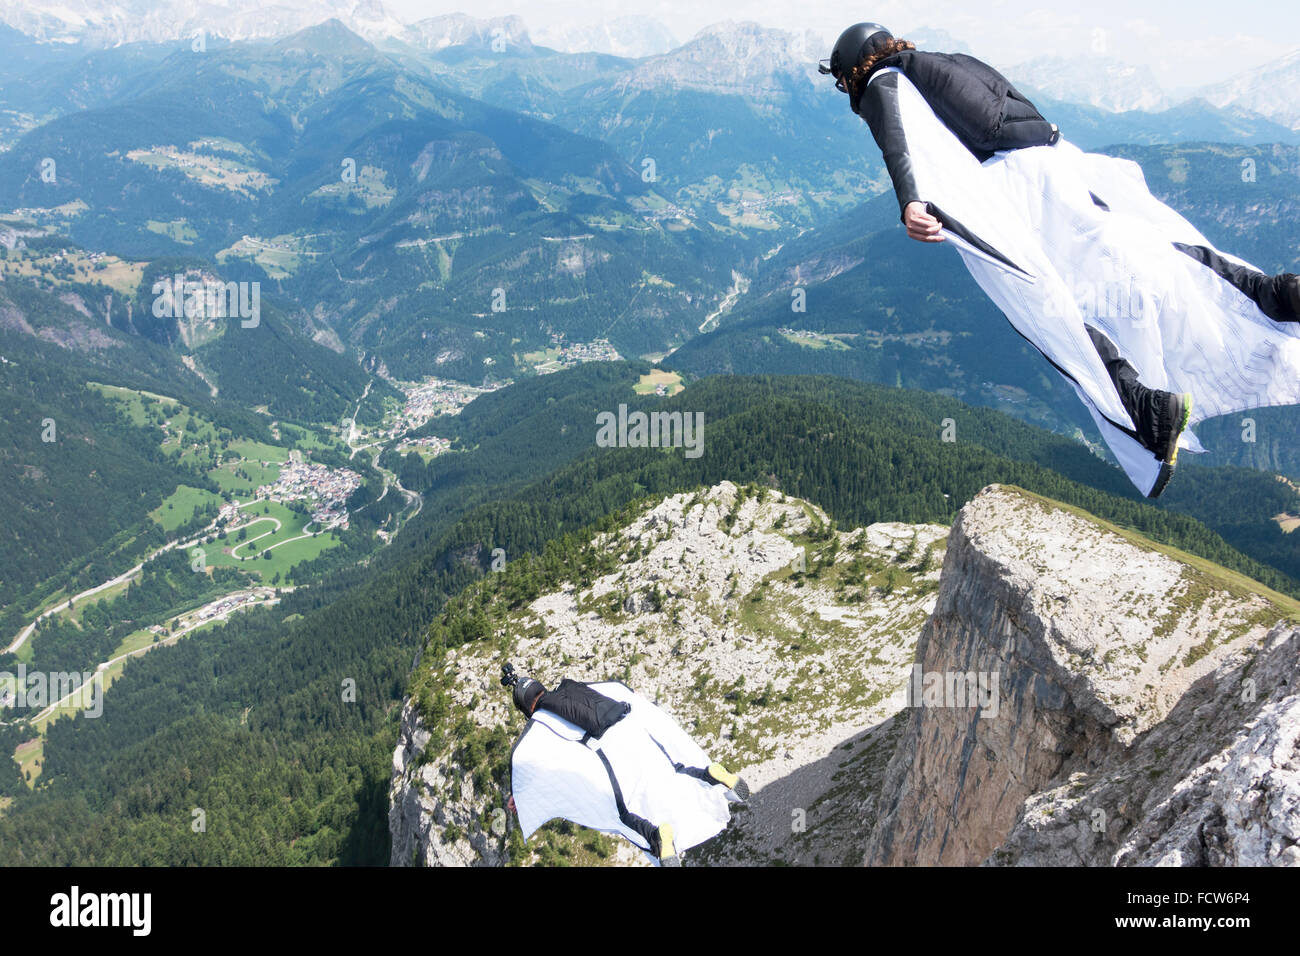 These two Wingsuit BASE jumpers just exit from a cliff. Soon they'll fly together in a formation and soar along - Stock Image